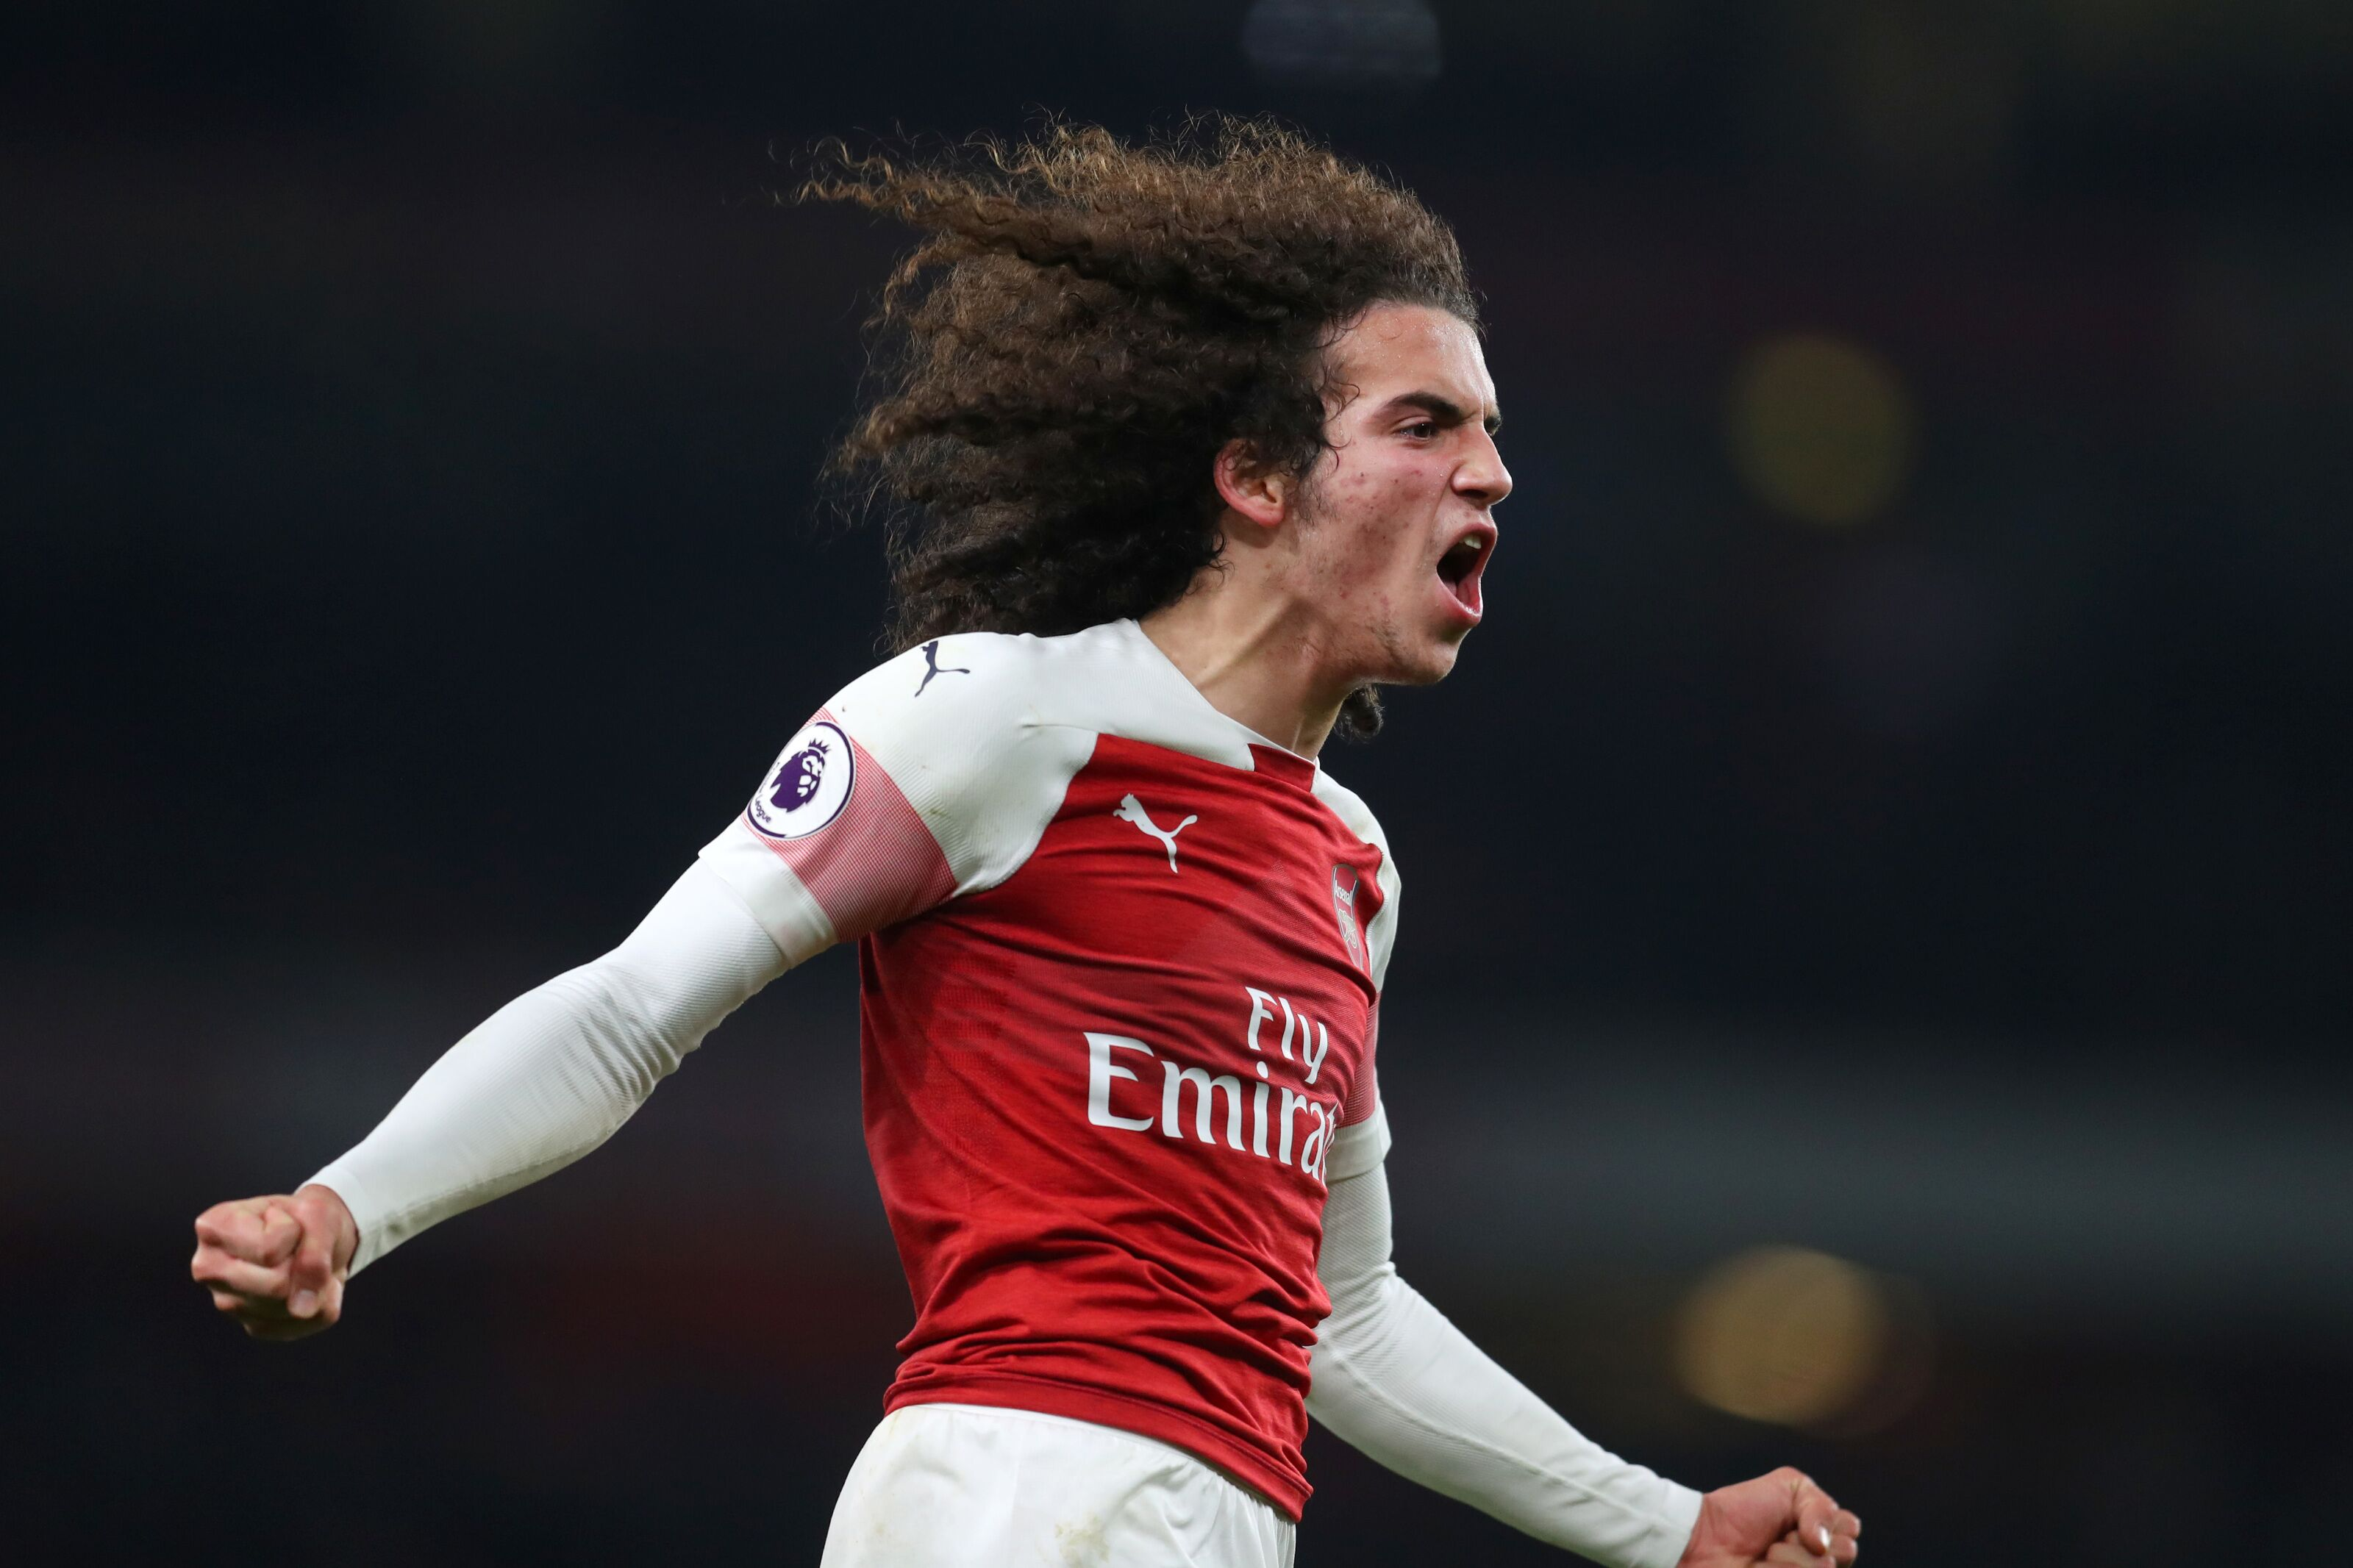 Arsenal: Matteo Guendouzi has already made that difference